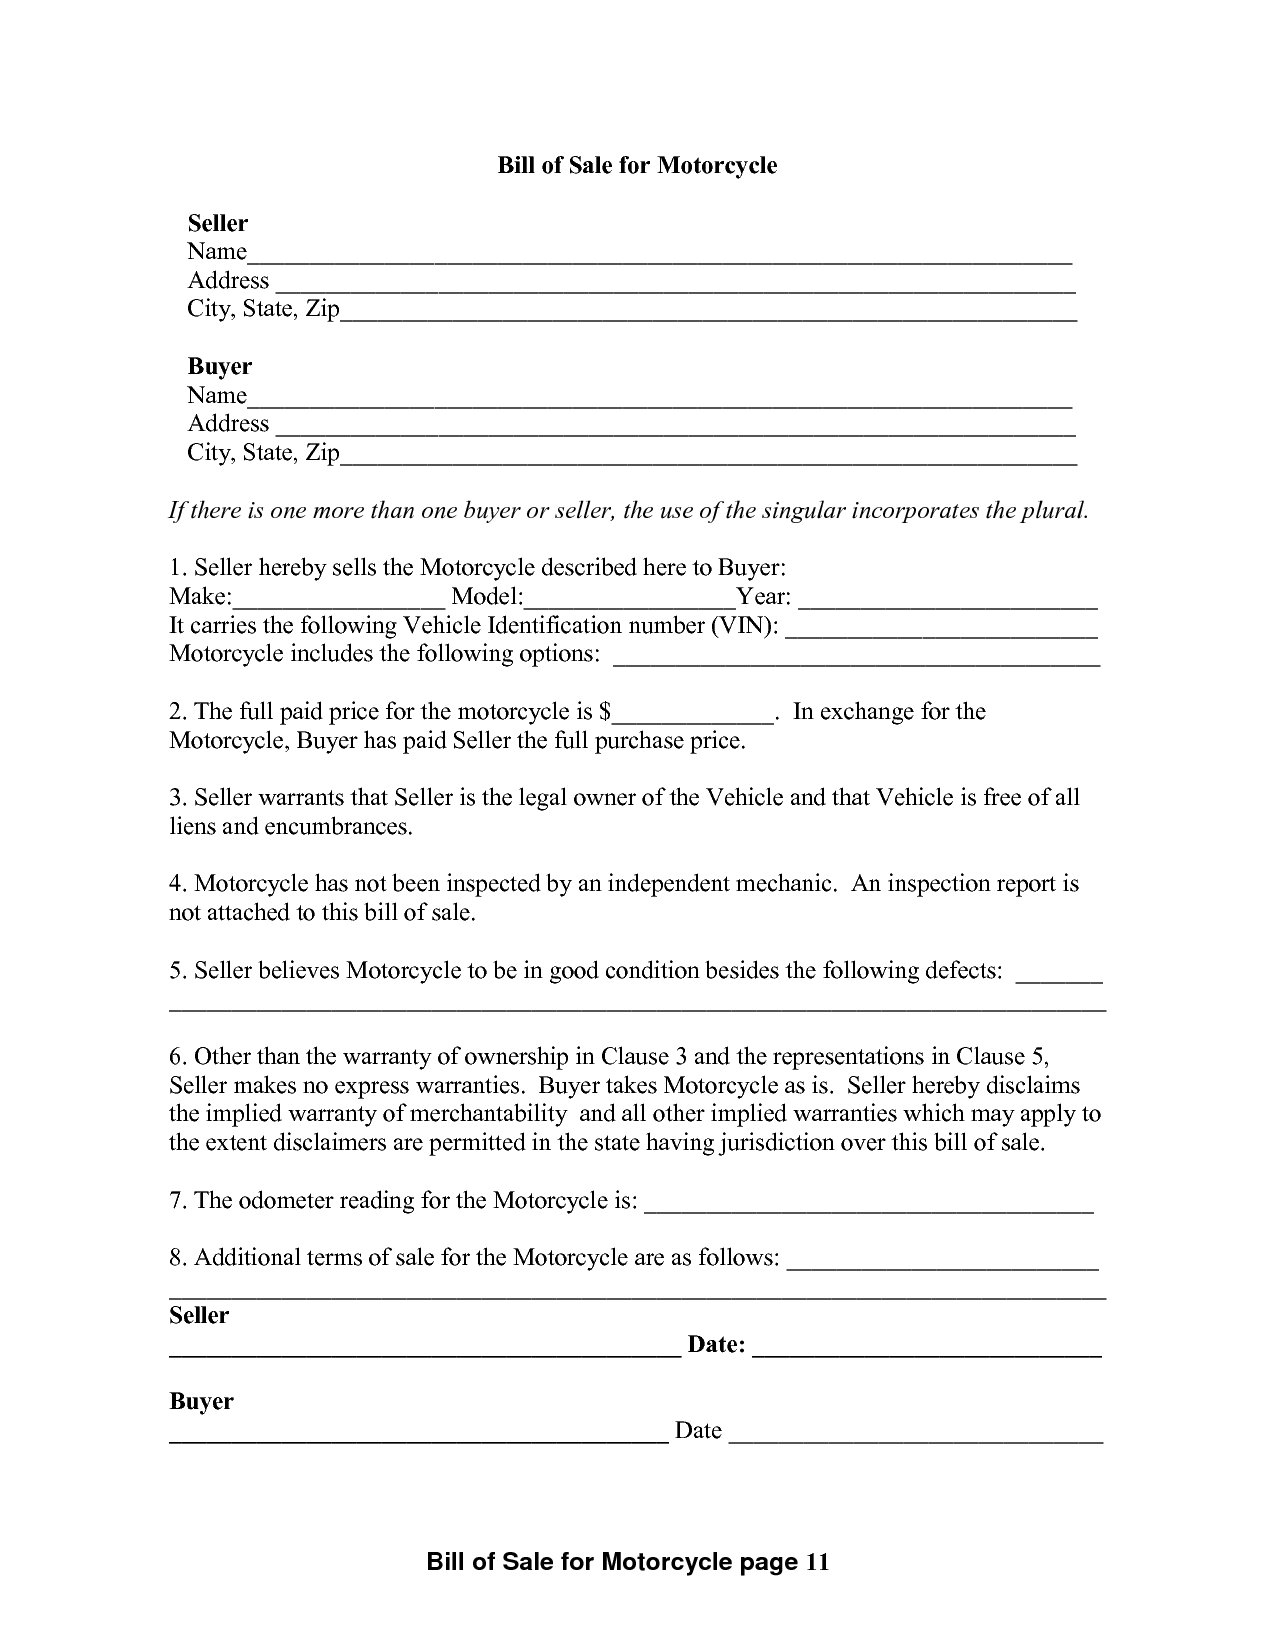 Bill Of Sale Template Colorado and 100 Template for Vehicle Bill Of Sale Printerforms Biz Sample E